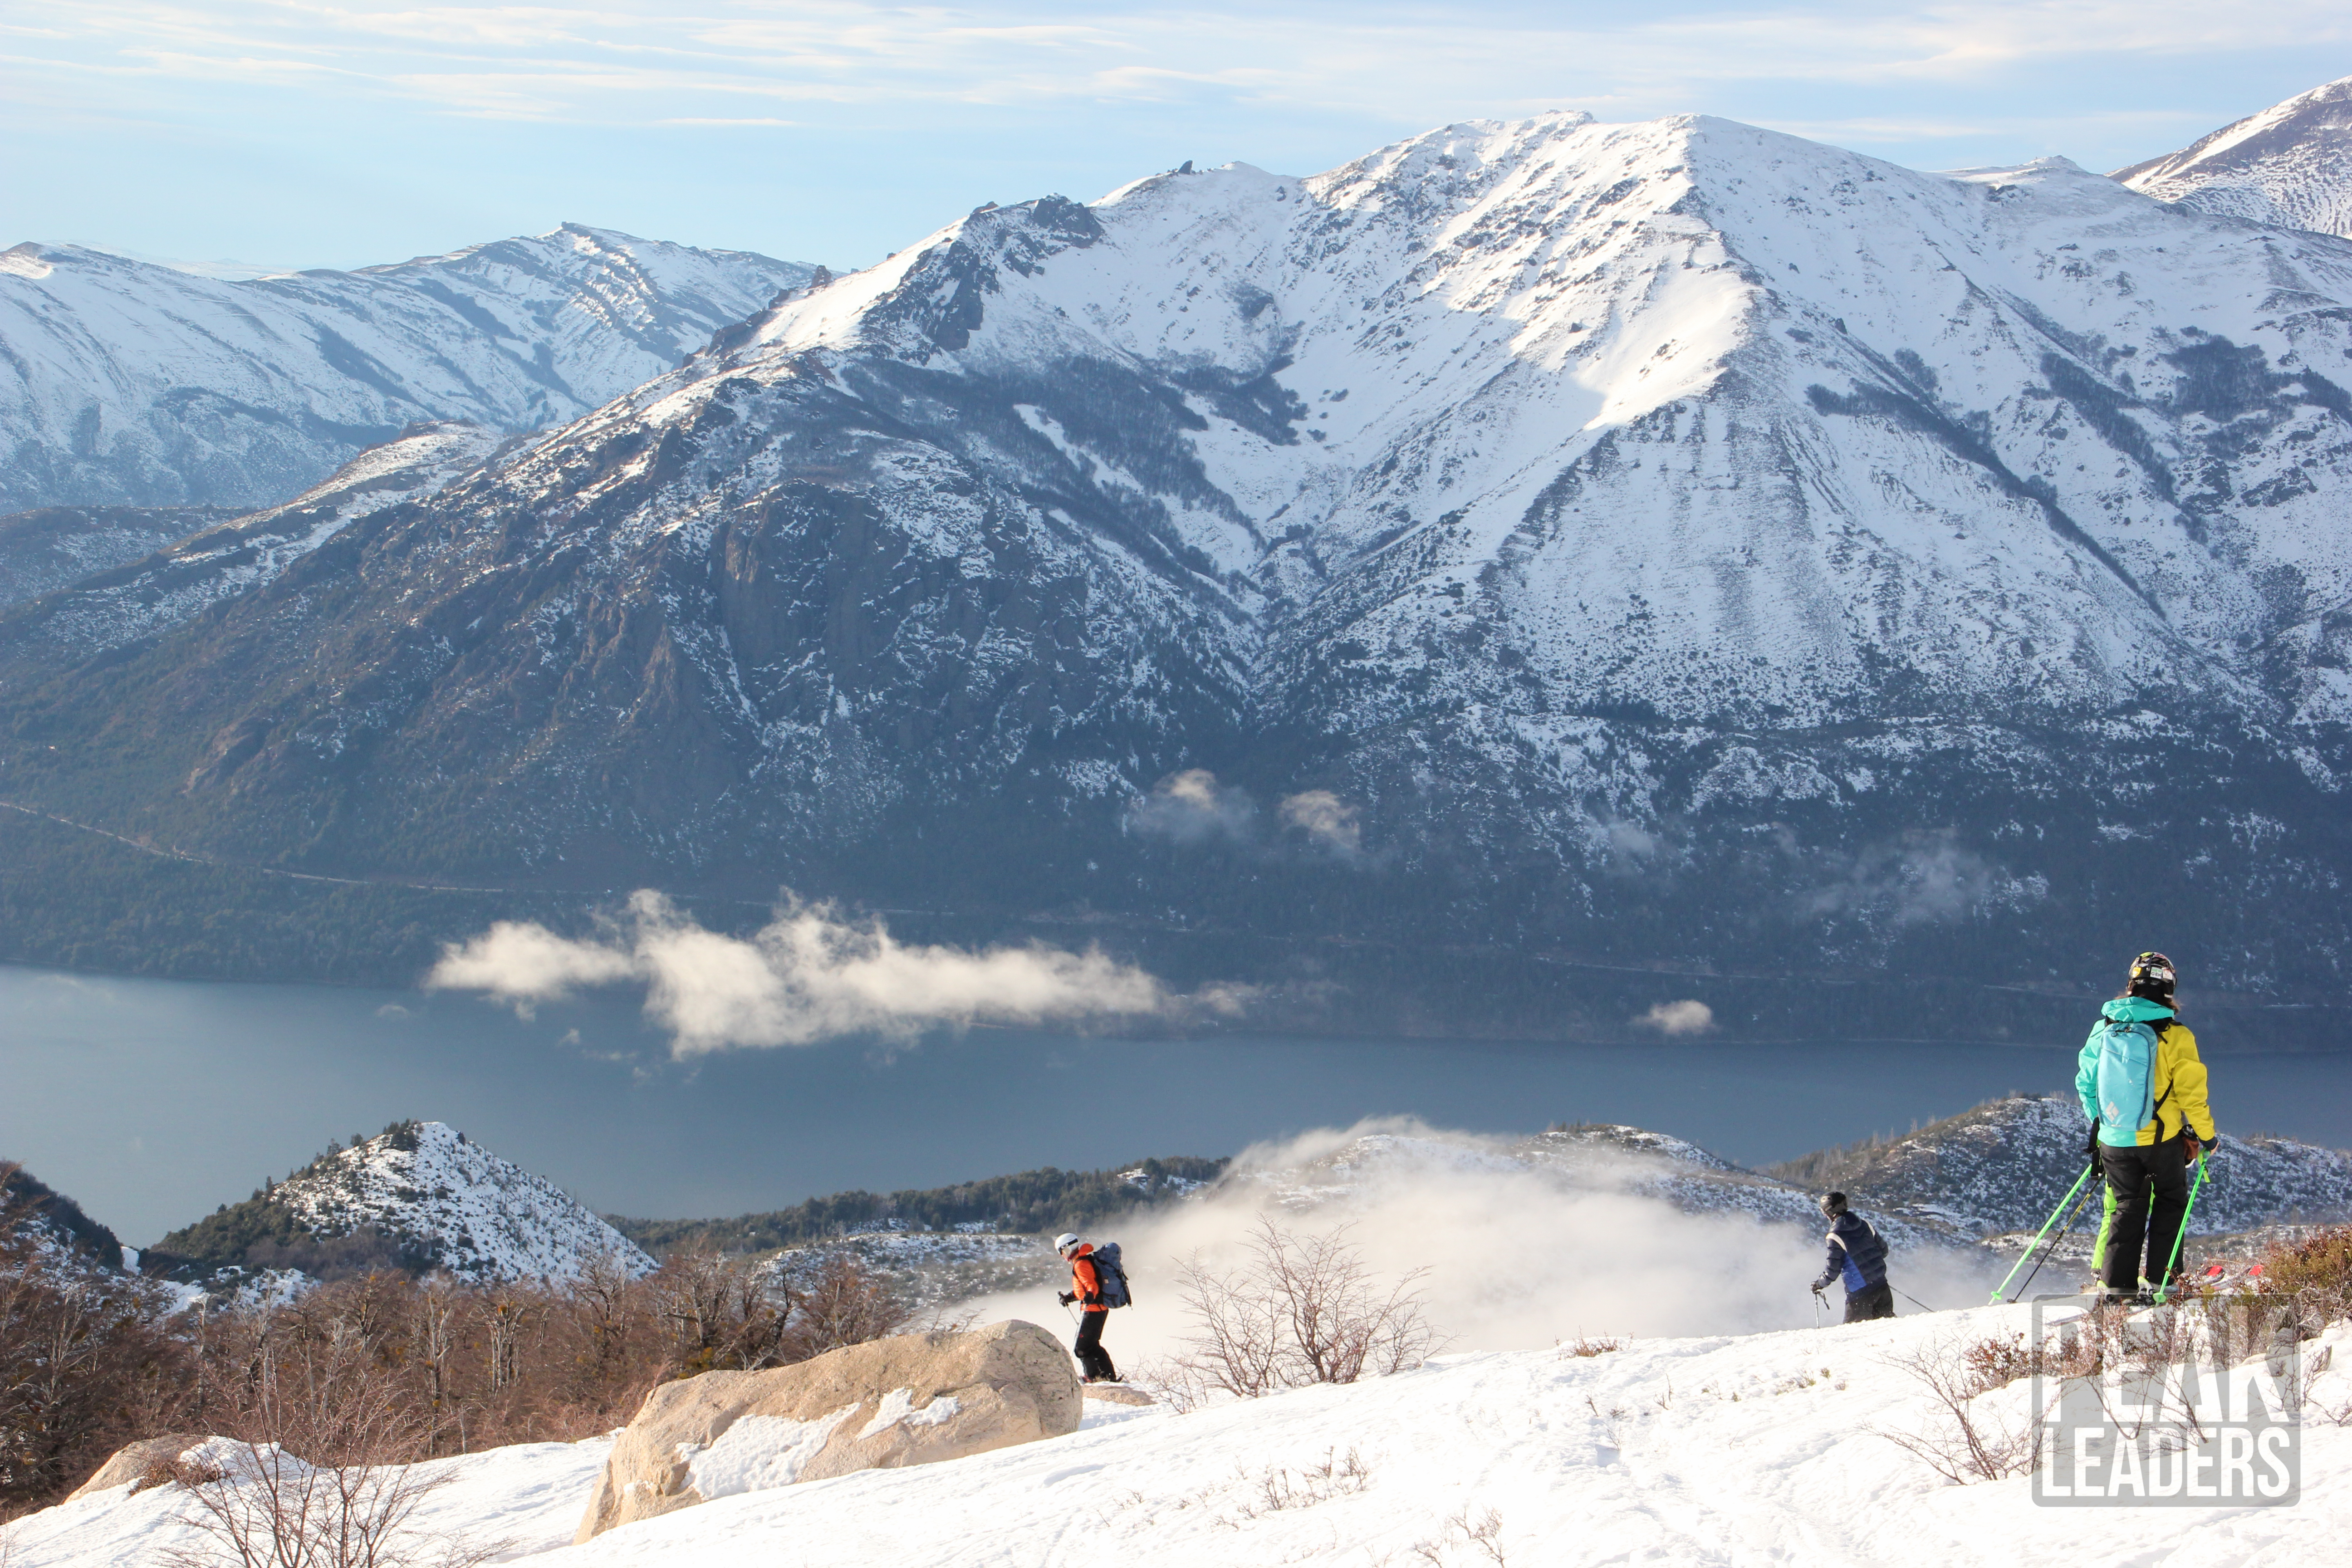 Mpre epic mountain vistas and avalanche awareness training to become a Ski Instructor Graduate